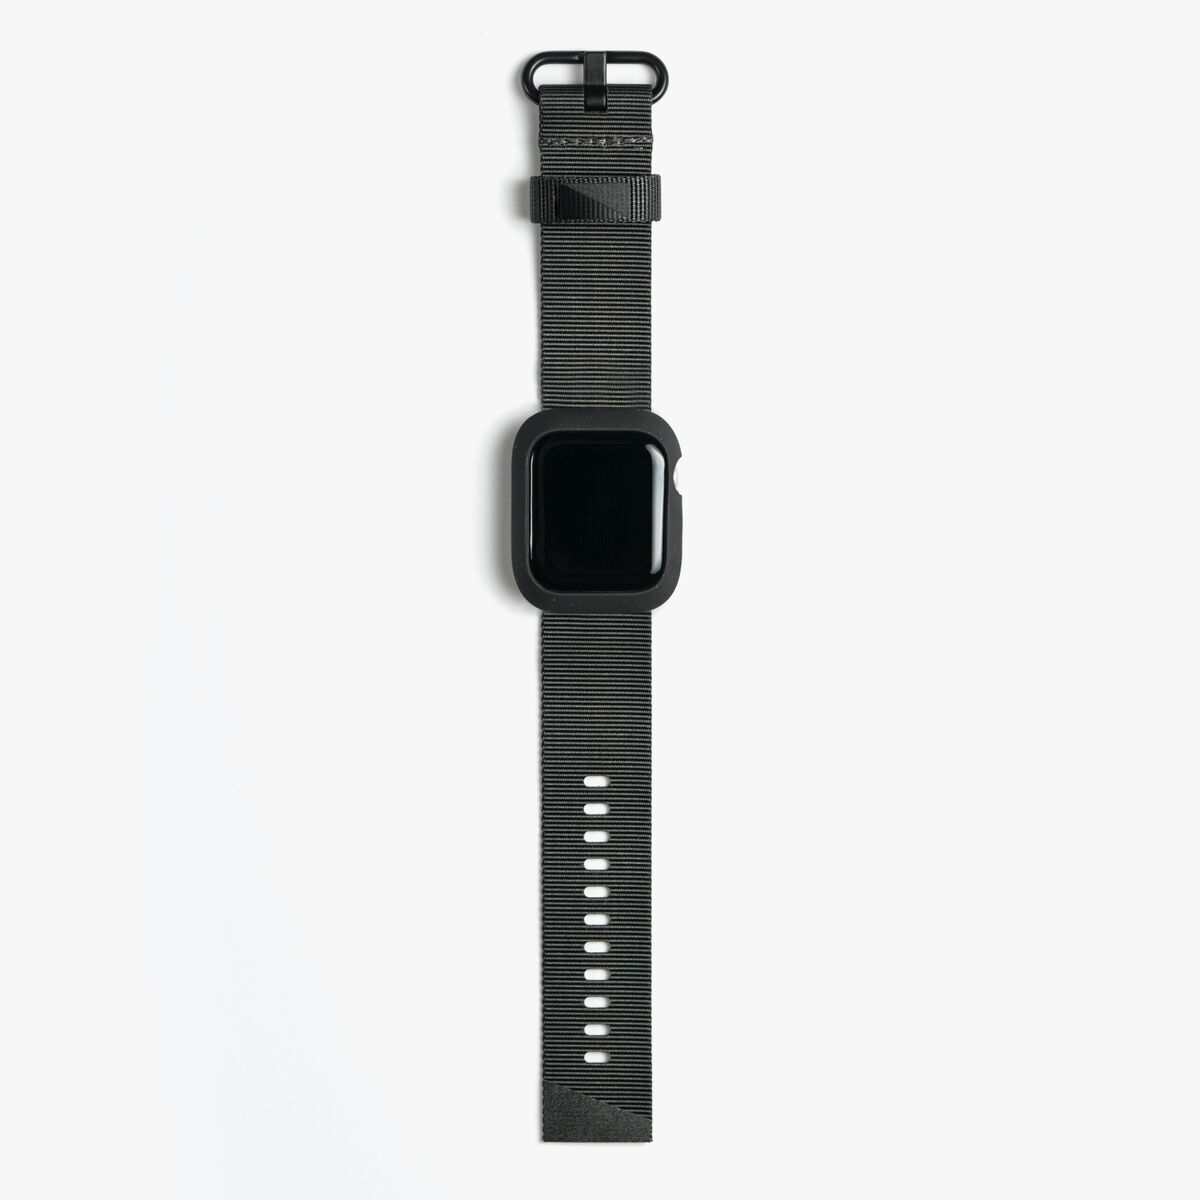 Moab Case + Band (Black) for Apple Watch Series 6 / Watch SE / Watch Series 5 / Watch Series 4 - 40mm,, large